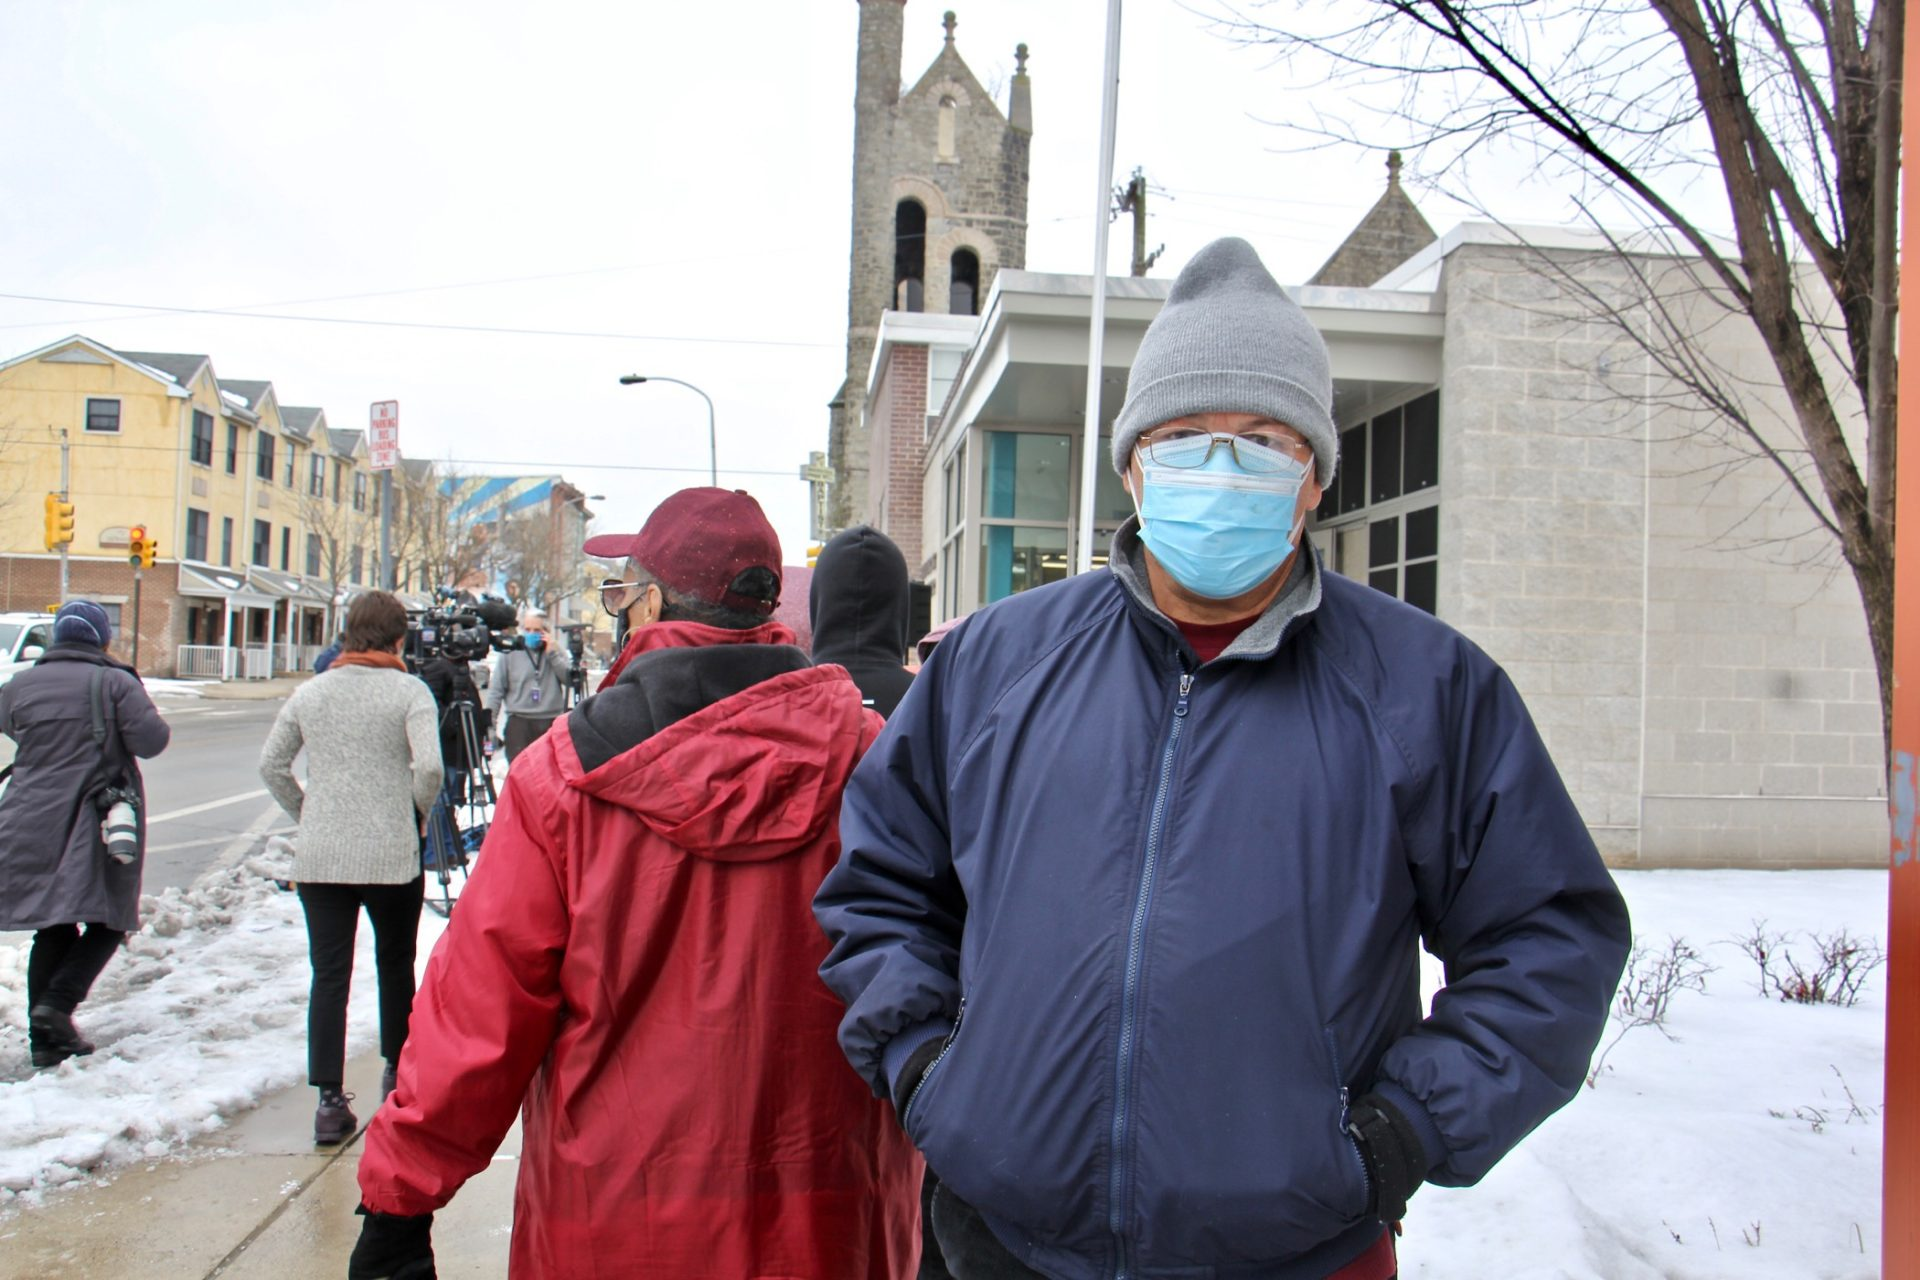 Hector Martinez, 63, waits in line at Philadelphia's first standing city-run COVID-19 vaccination clinic, which opened at the Martin Luther King Jr. Older Adult Center on Cecil B. Moore Avenue, Tuesday, Feb. 23, 2021.